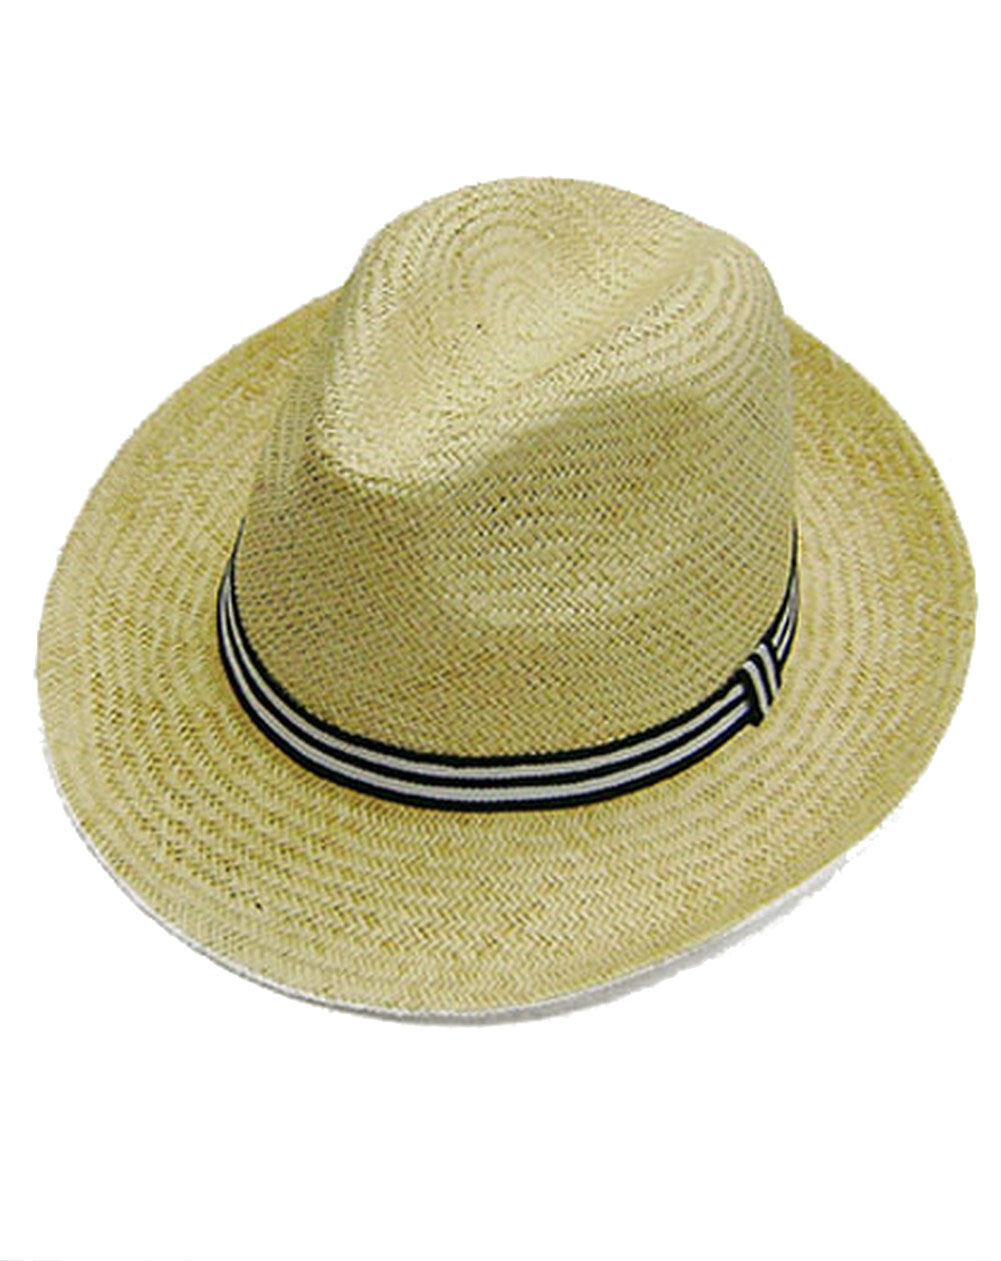 canada usa international quality comfort style fit guaranteed modestone western country casual trapper hat straw cowboy hat straw panama equestrian tack dude ranch  fashion accessories distributor wholesale retail